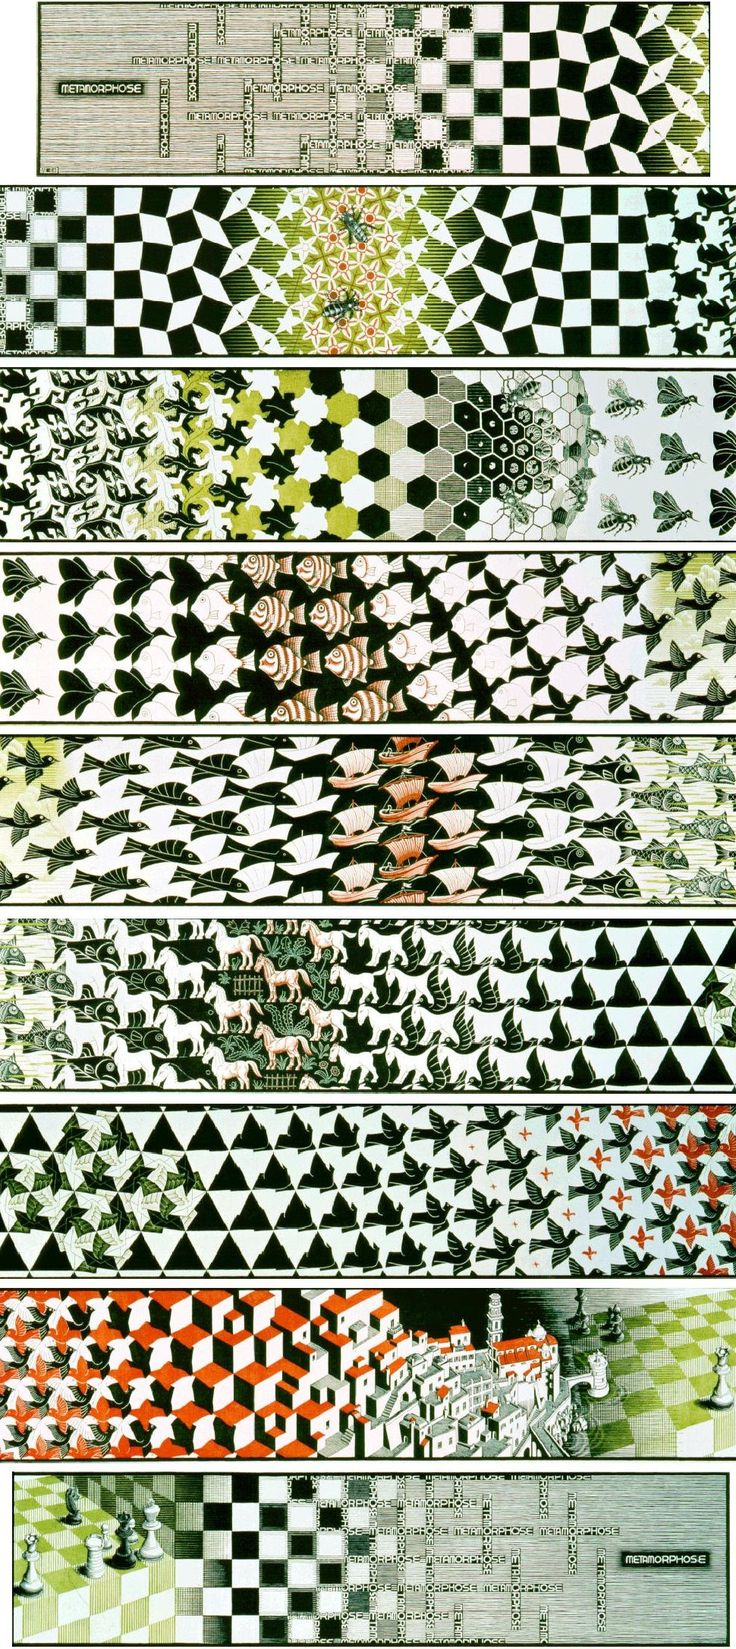 Escher's metamorphosis. This theme of aglorithmtically transforming a tiling is particular type of algorithmic mathematical art.